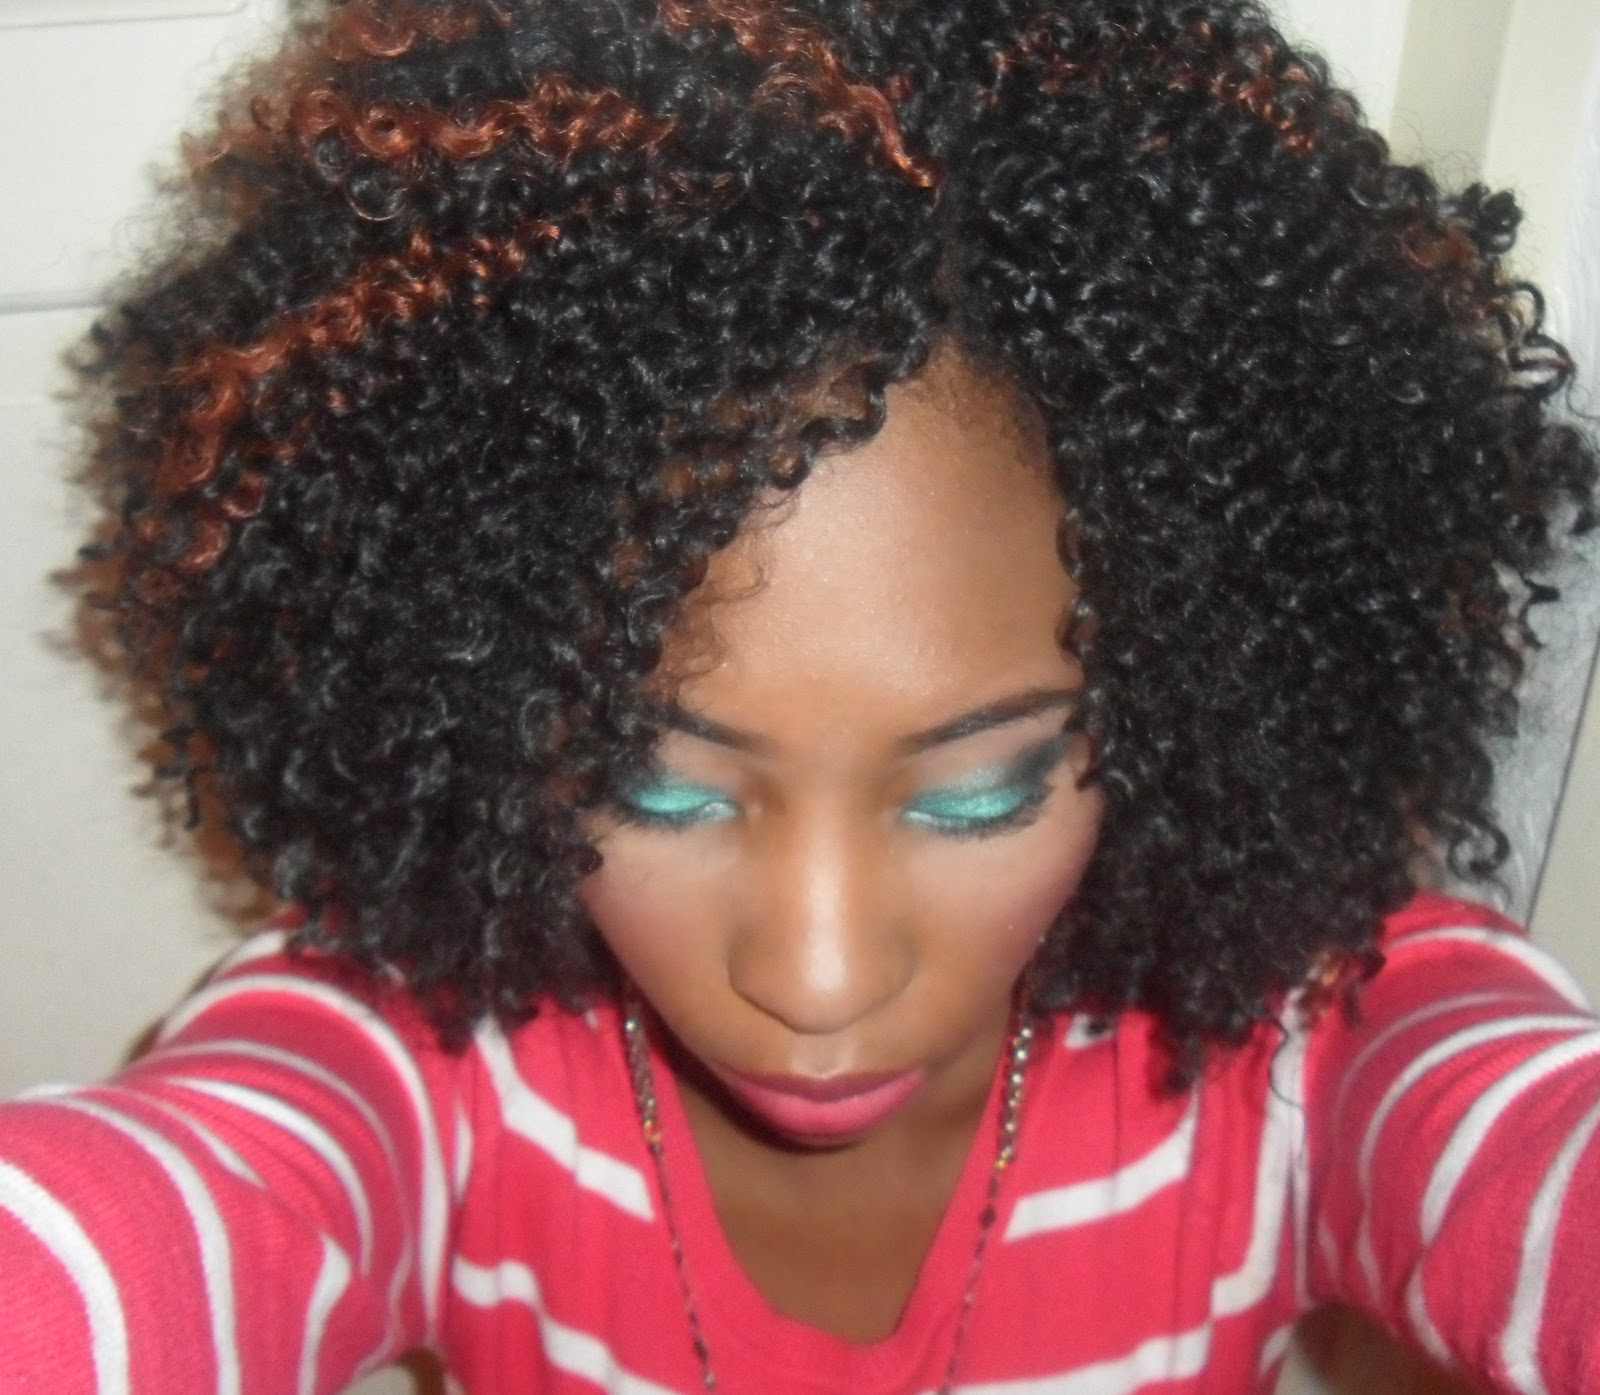 Crochet Hair Cut : Any questions, e-mail me at nubianpride@live.co.uk / tweet me @Ray ...